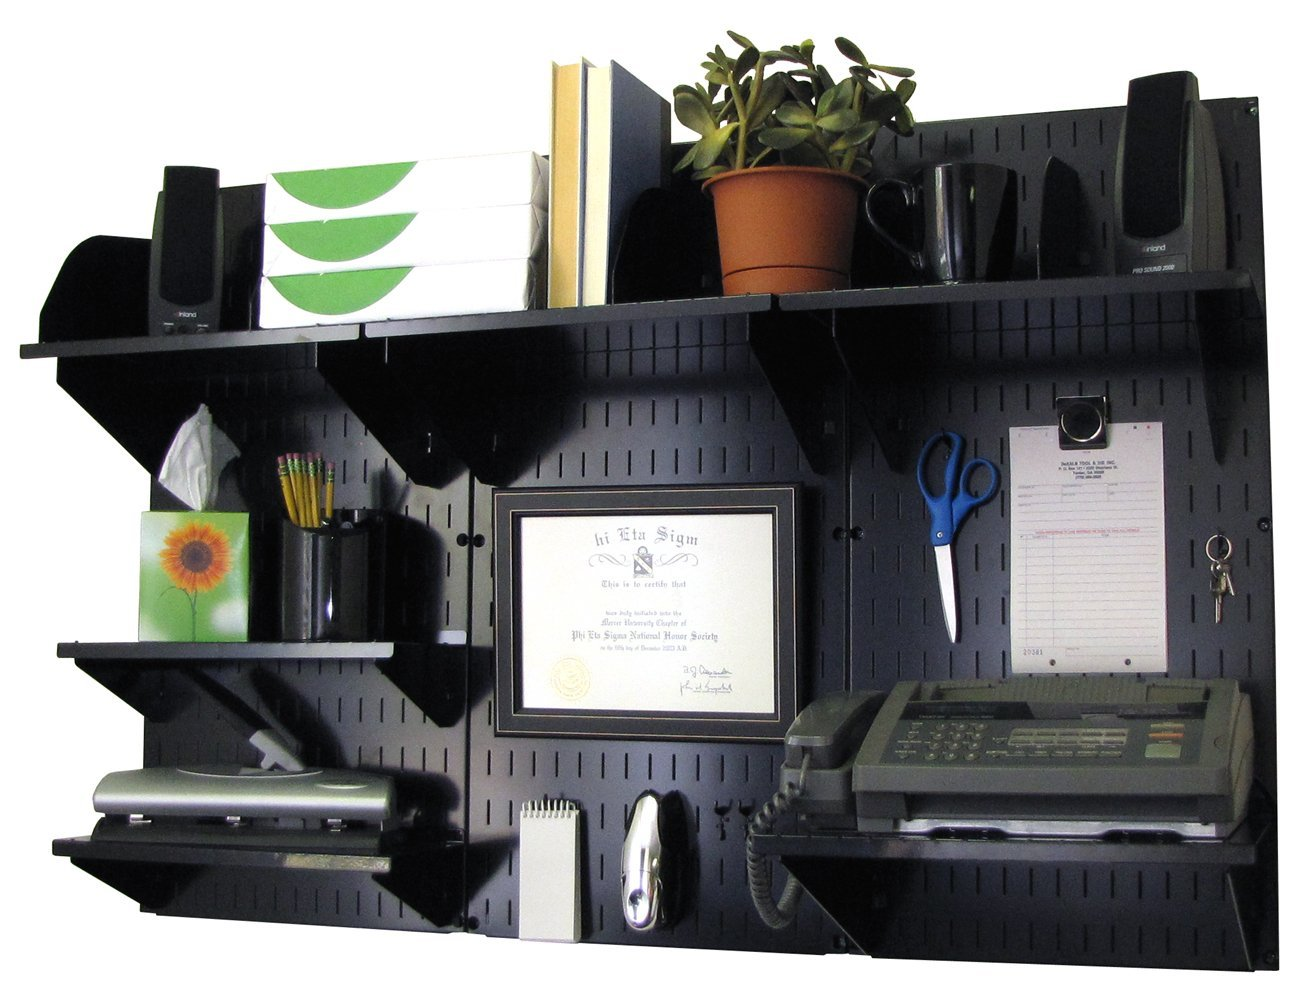 Office Wall Mount Desk Storage and Organization Kit